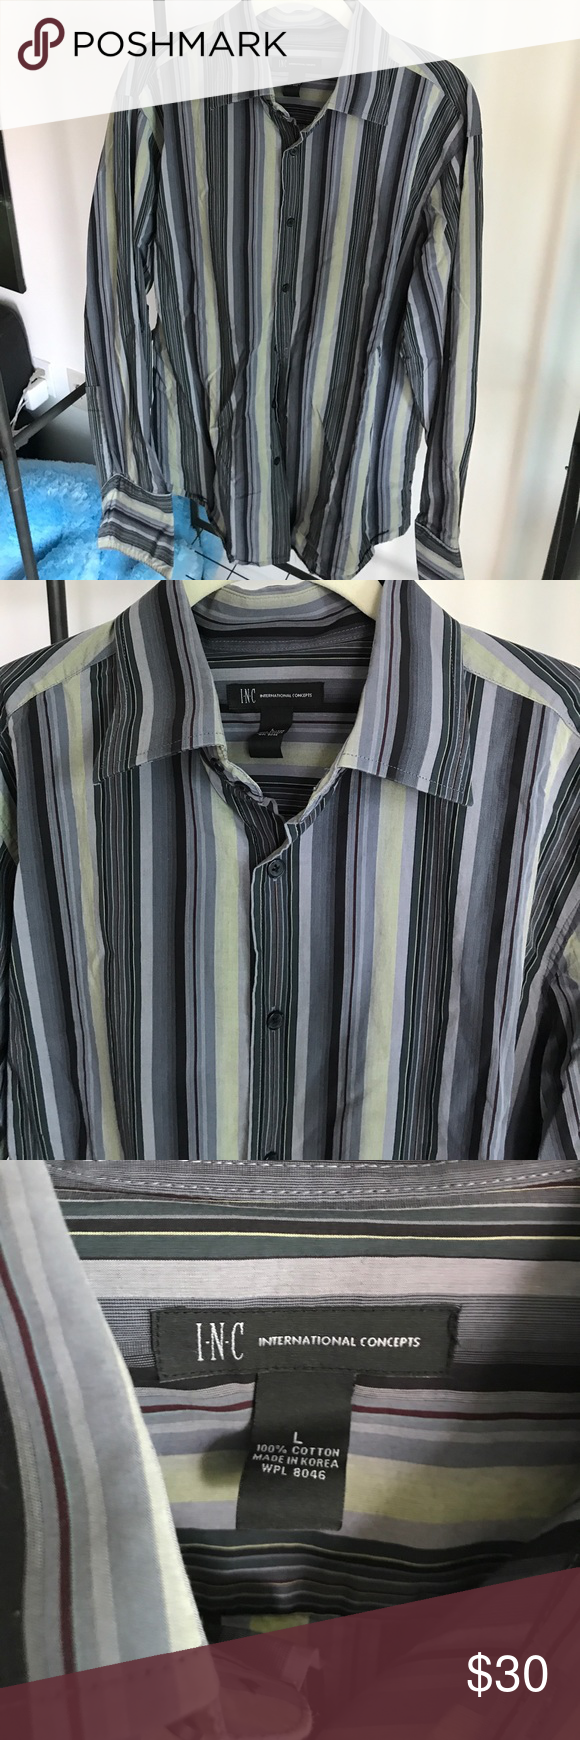 INC Mens Dress Shirt - Large - Worn Once Excellent INC Mens Dress Shirt - Large - Worn Once - Excellent Condition - Dry Cleaned Once after Wear - Beautiful Purple Light Green Striped Dress Shirt INC International Concepts Shirts Dress Shirts